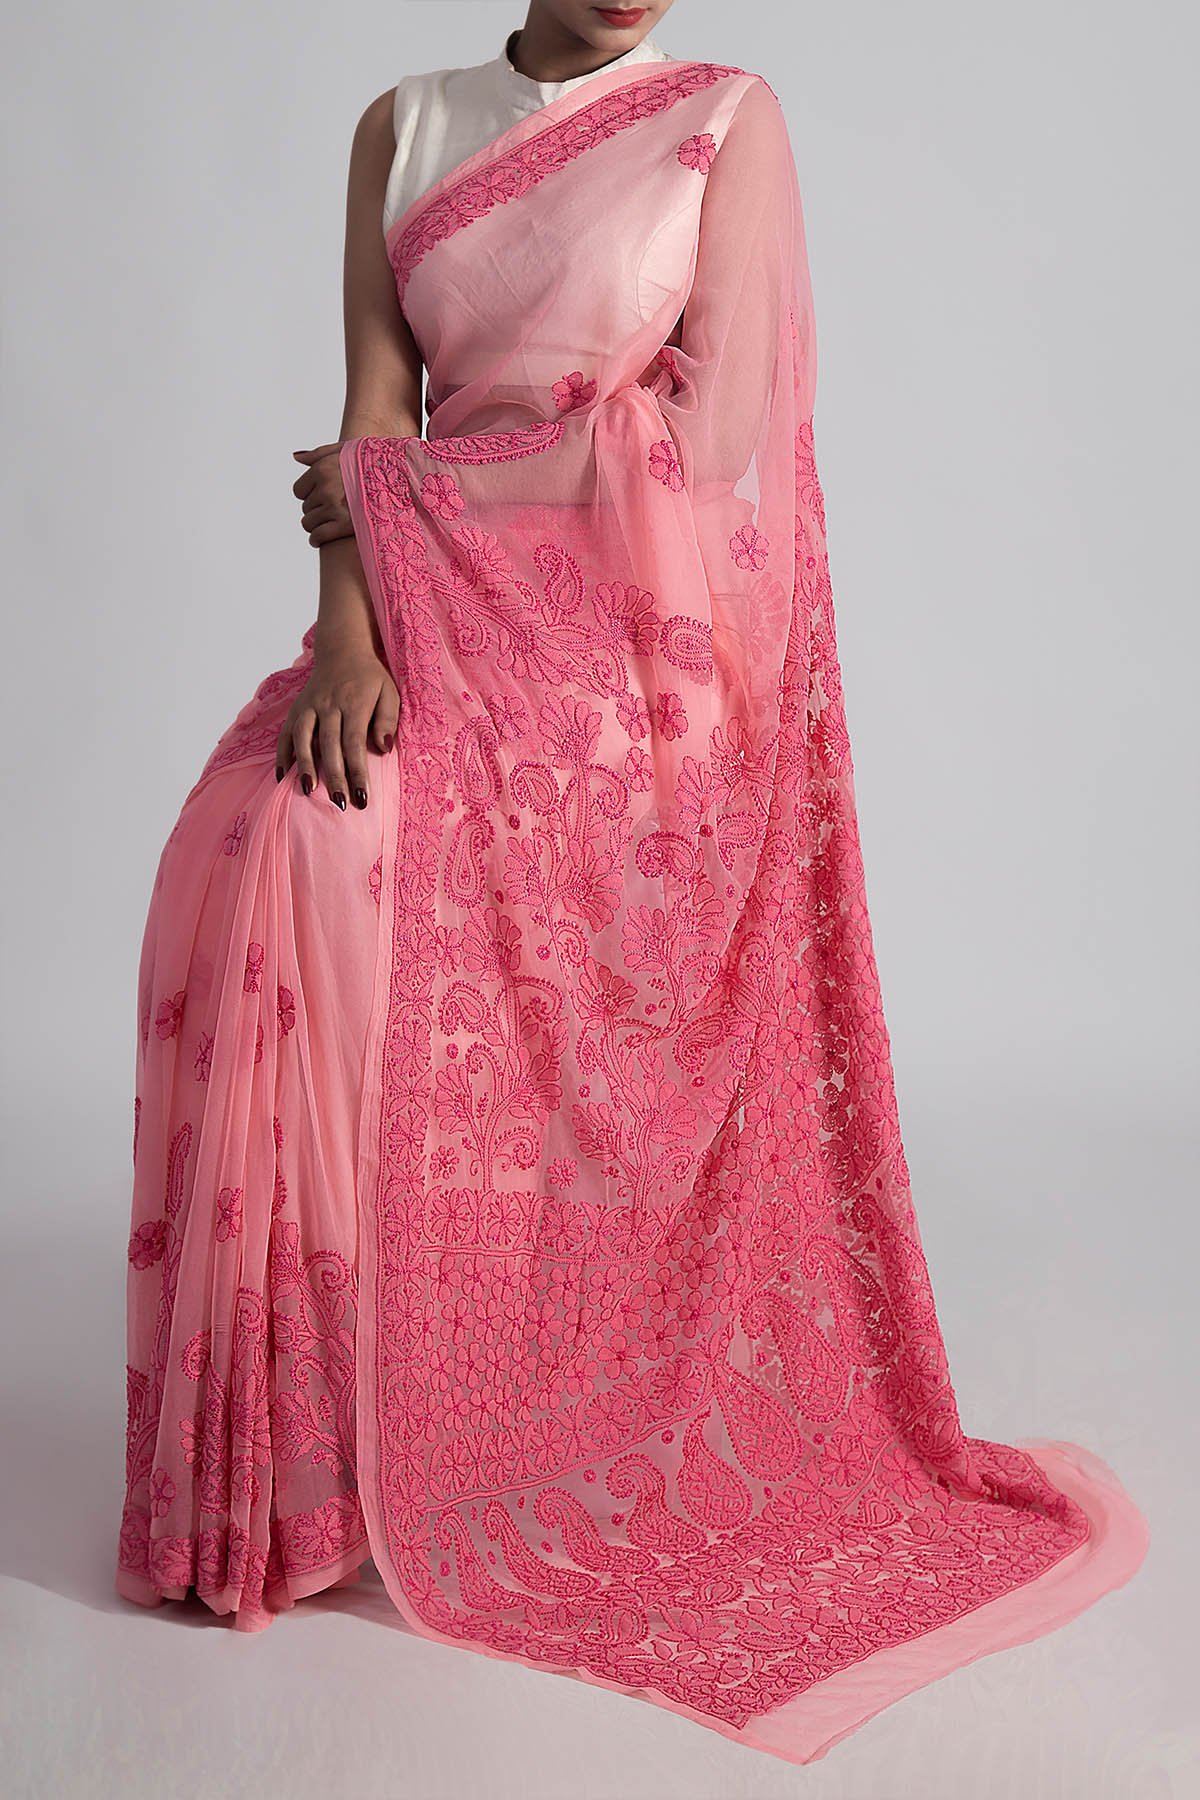 Hand Embroidered Peach Colour Lucknowi Chikankari Saree (With Blouse - Georgette) GA250613